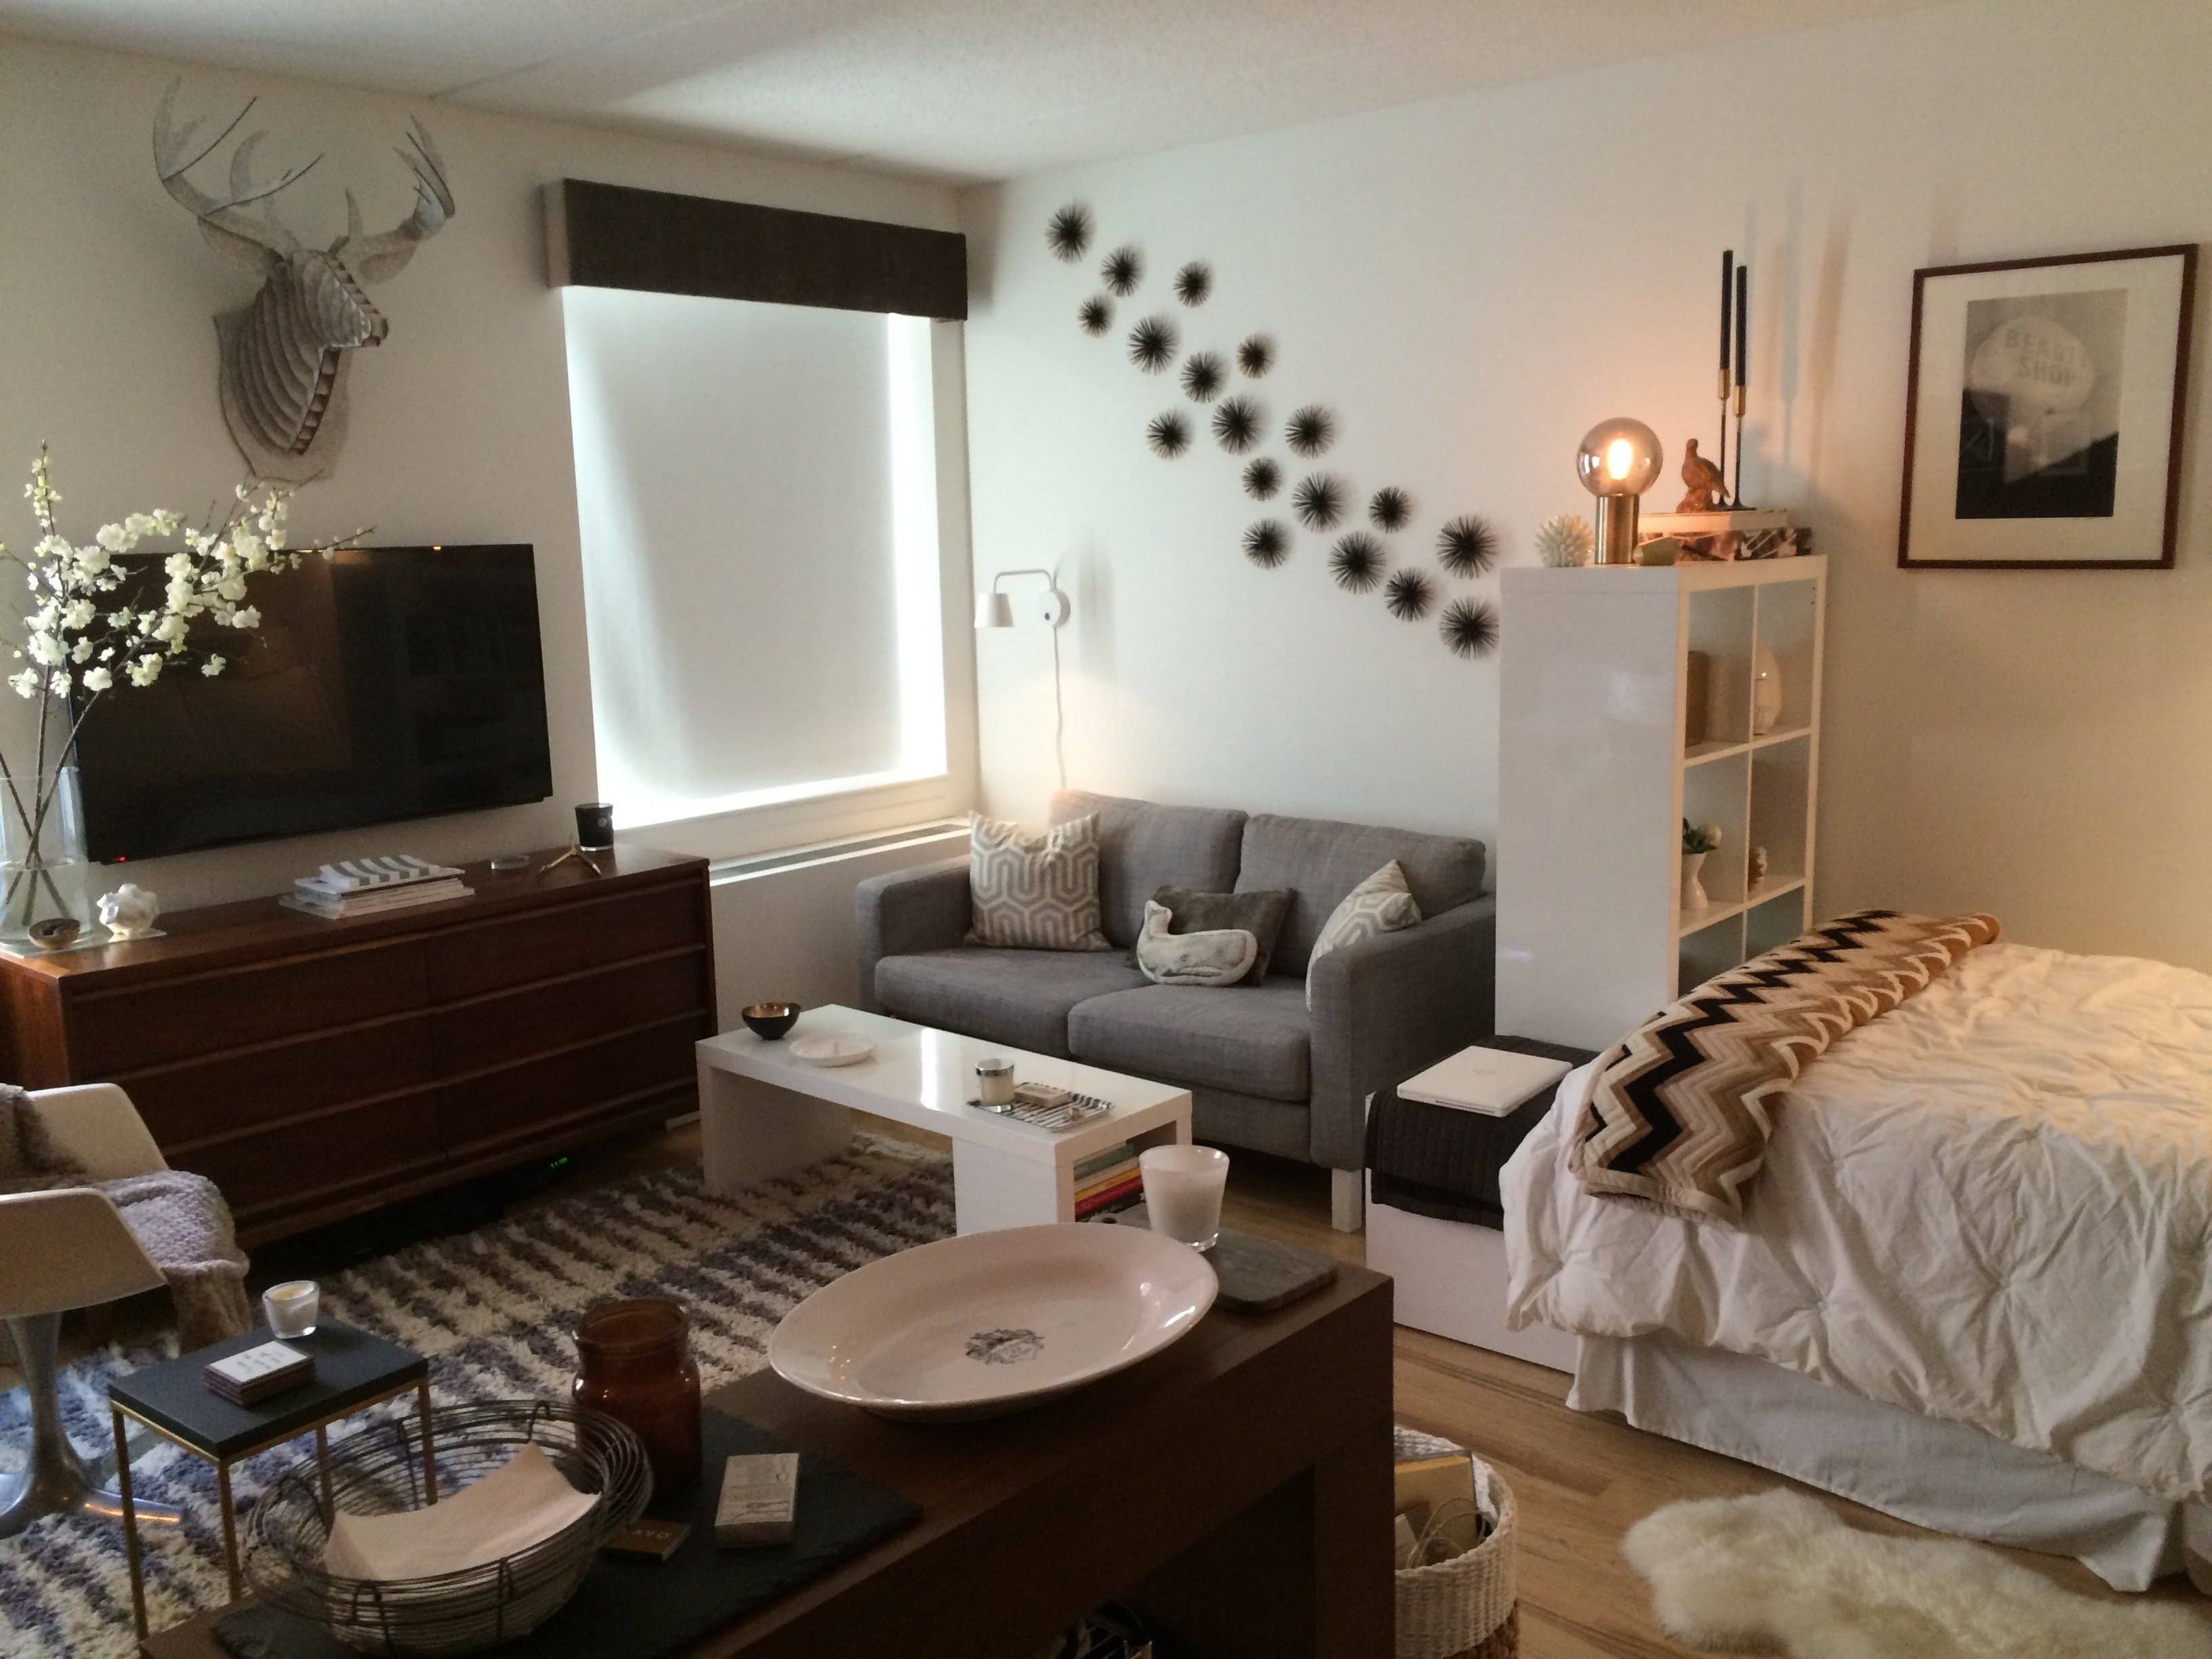 5 studio apartment layouts that work studio apartment for 5 bedroom apartments